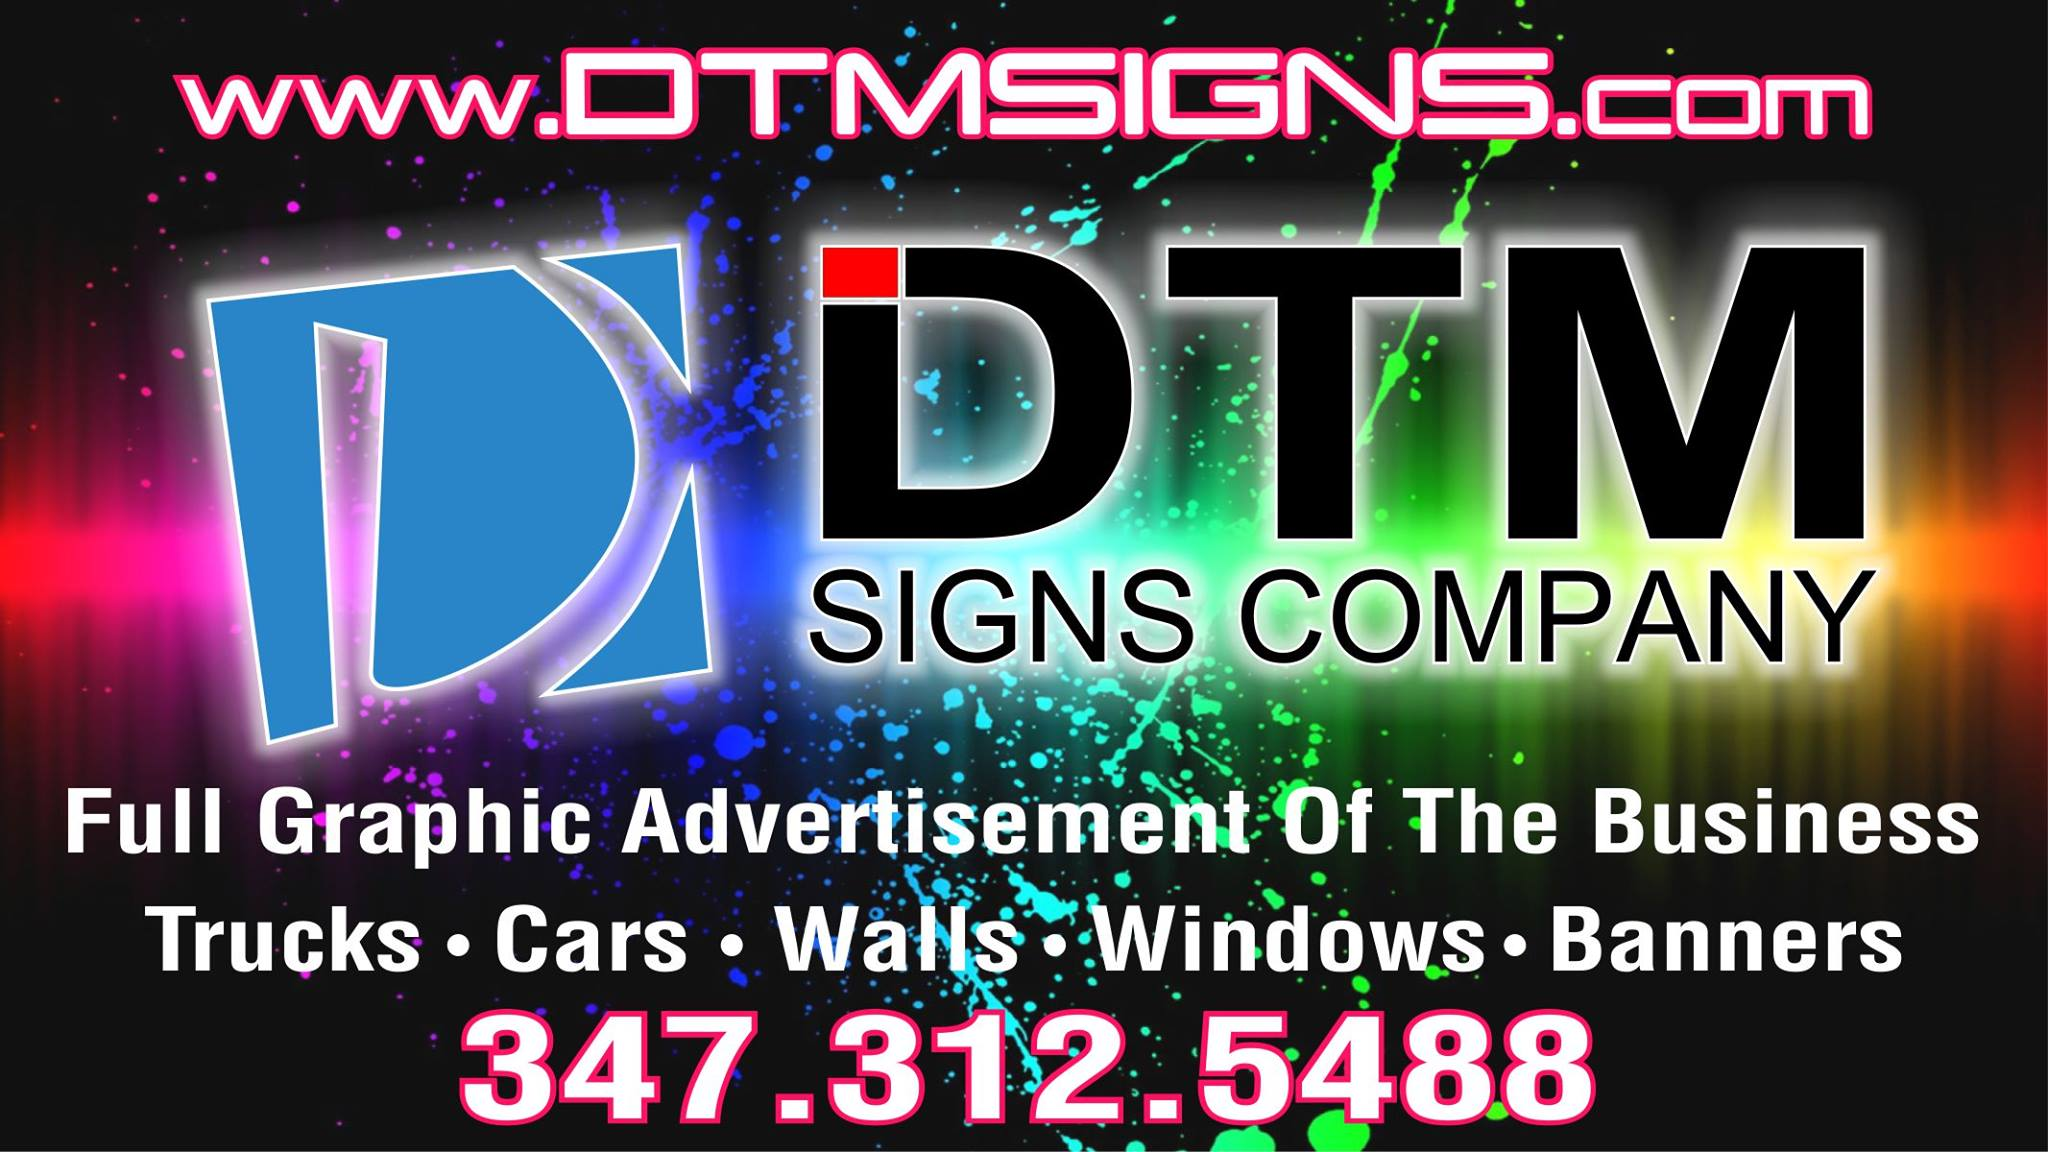 DTM Signs and Truck Wraps